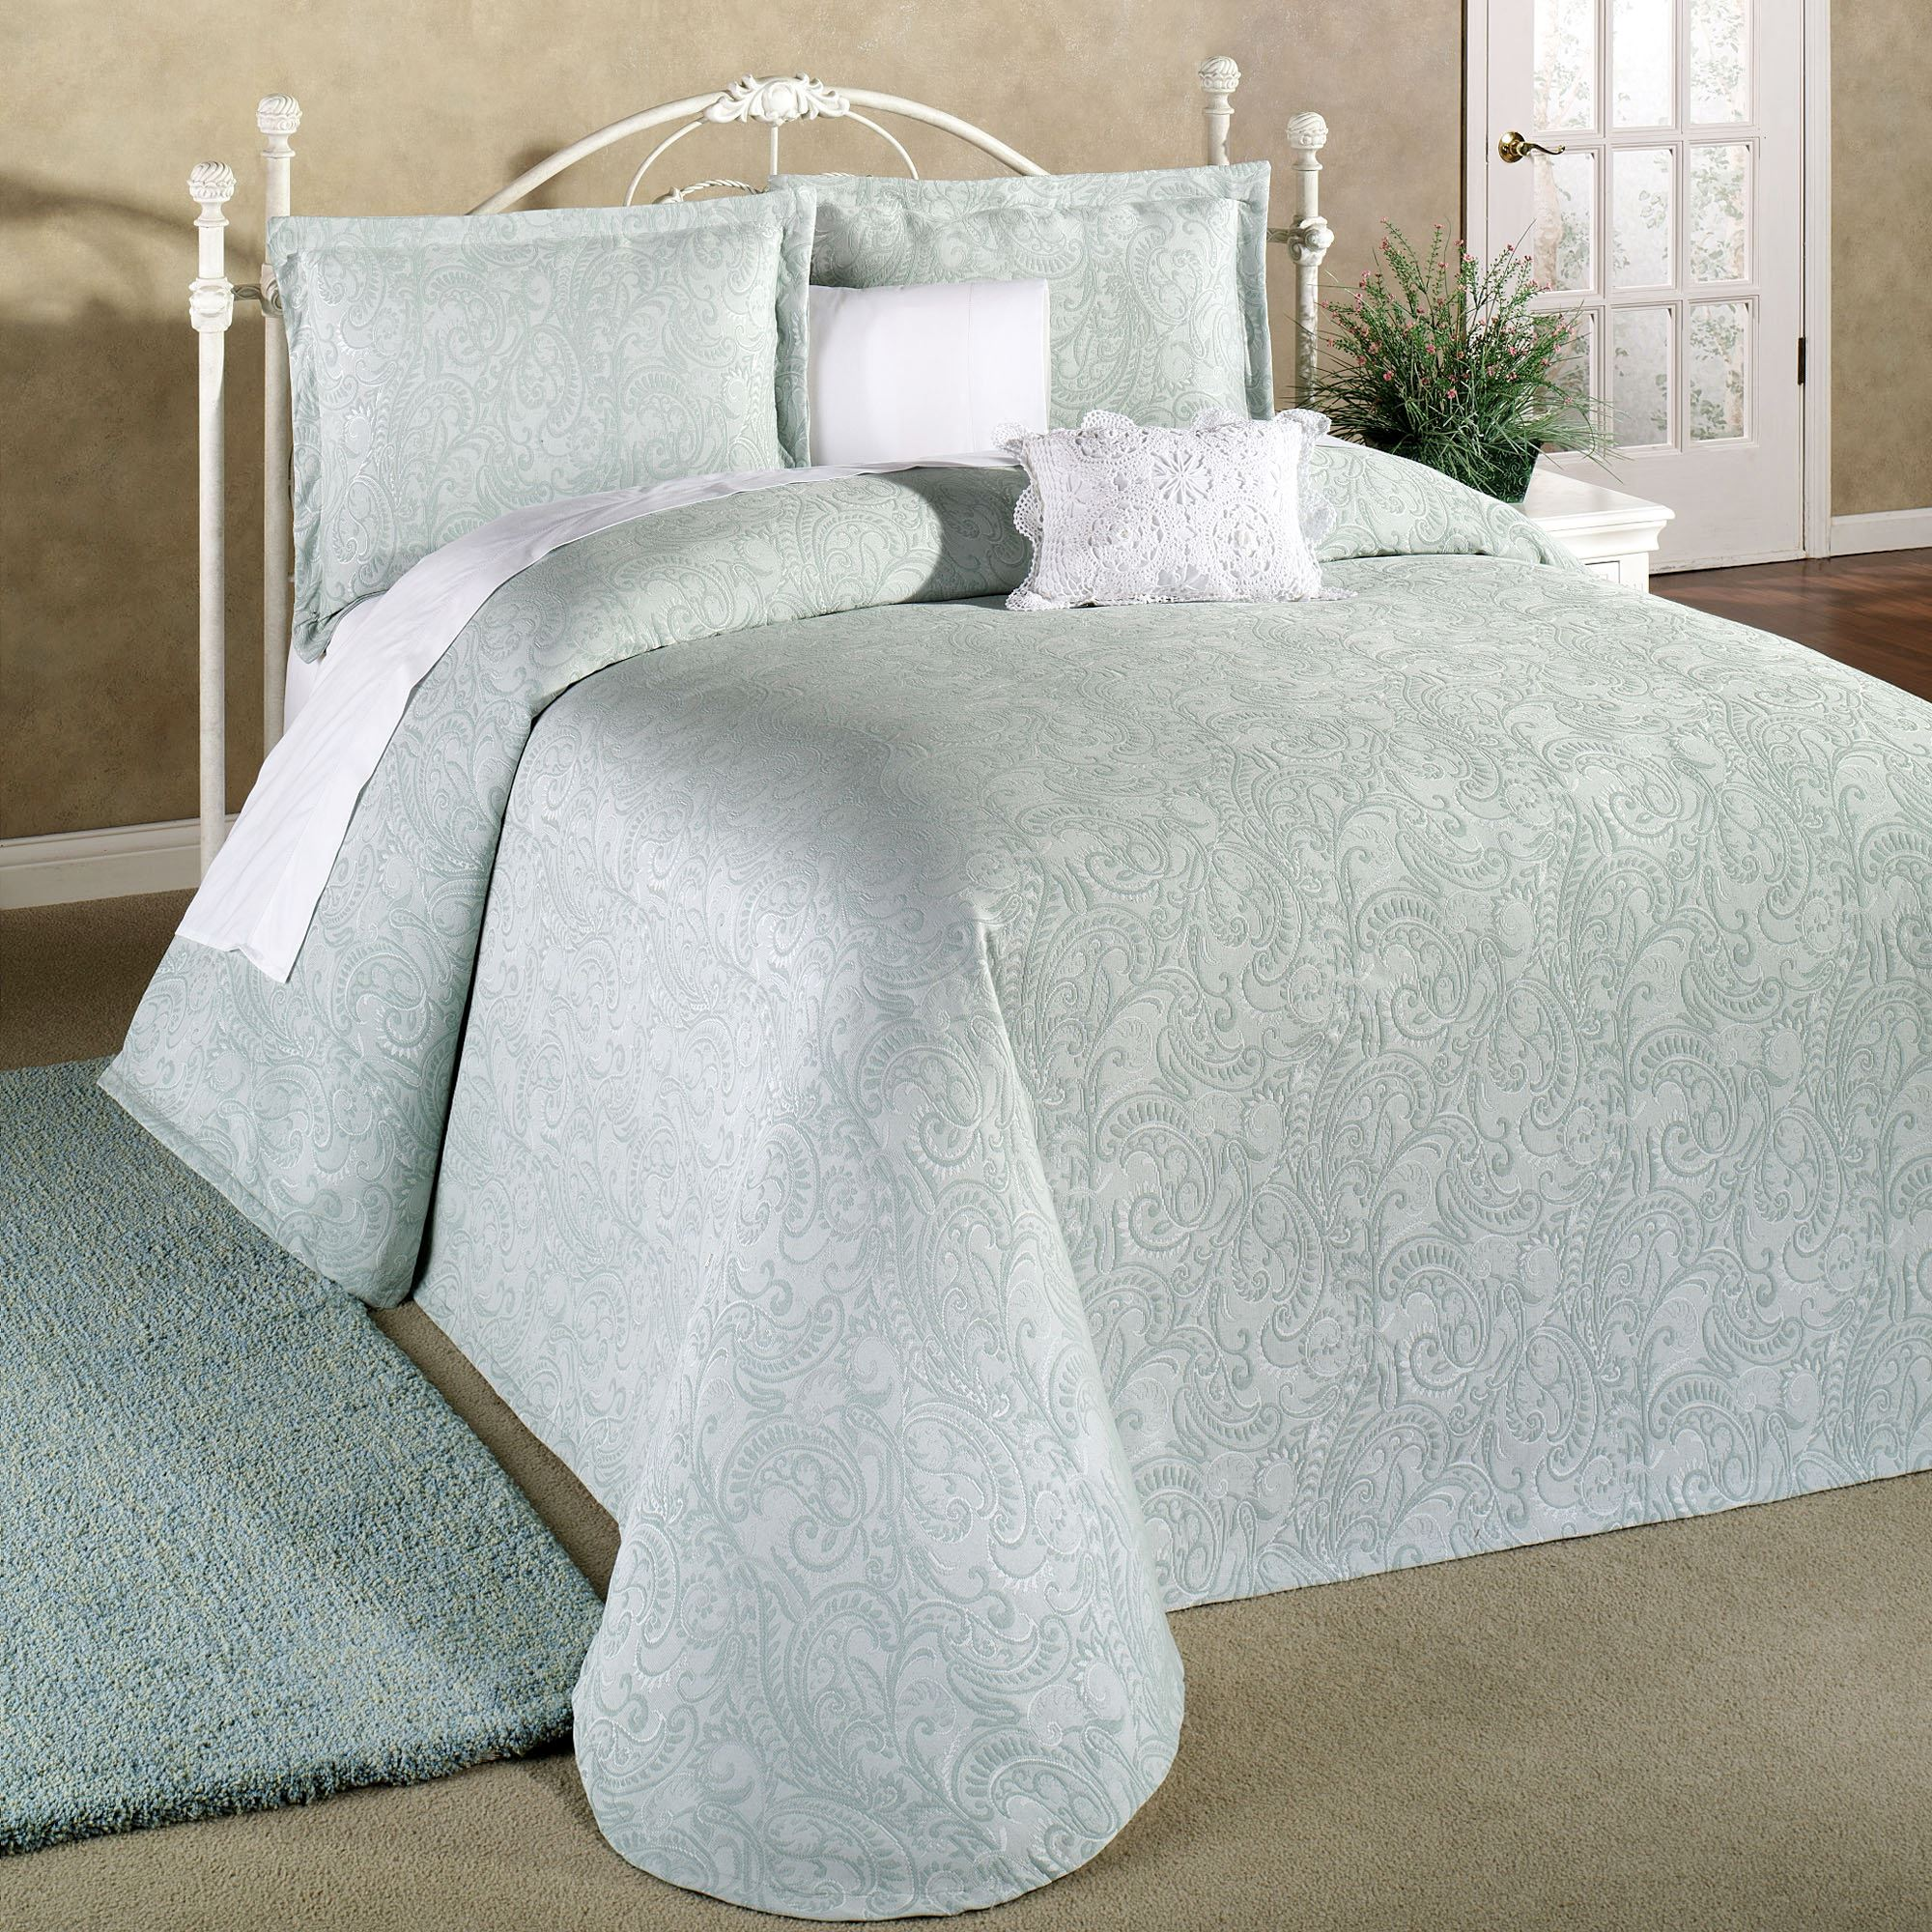 Amazing Provence Lightweight Matelasse Bedspread. Click To Expand